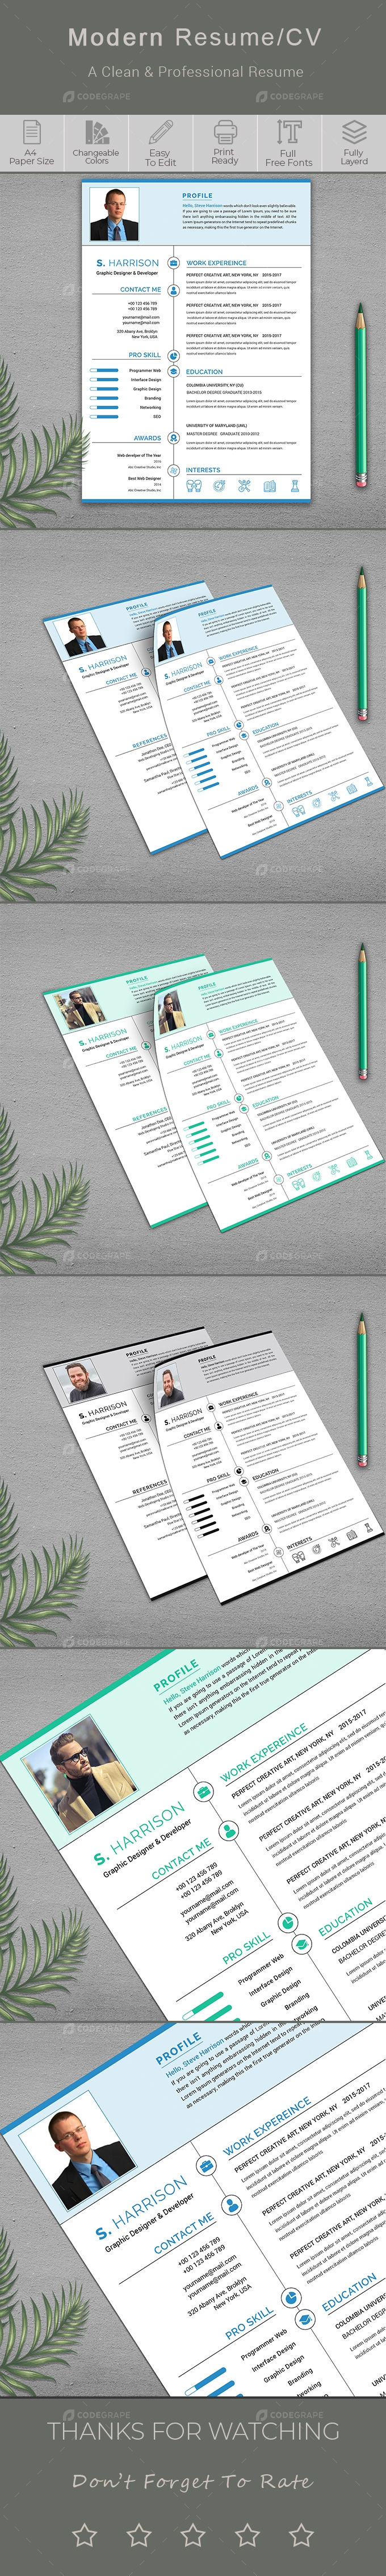 Clean Resume/CV Template With Cover Letter